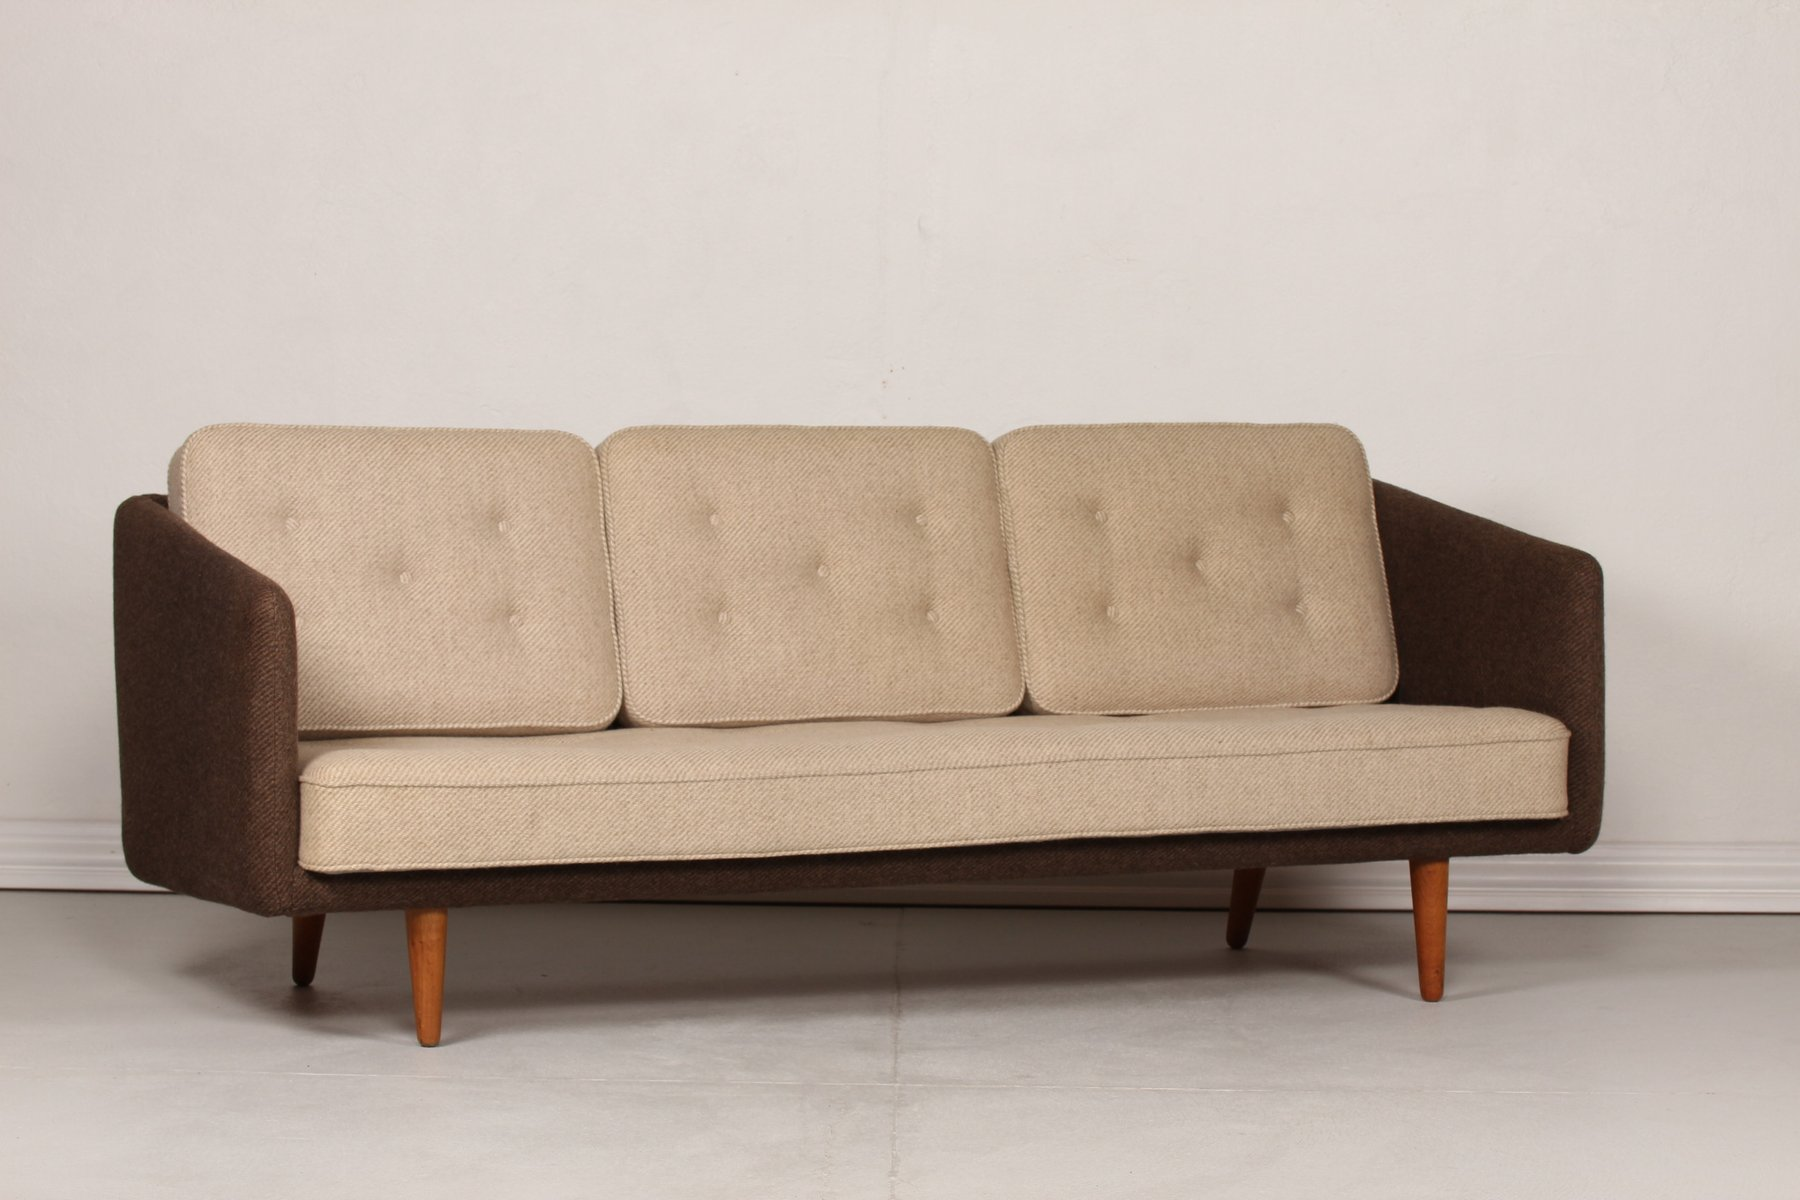 Charmant 1 Sofa By Børge Mogensen For Fredericia Furniture, 1960s